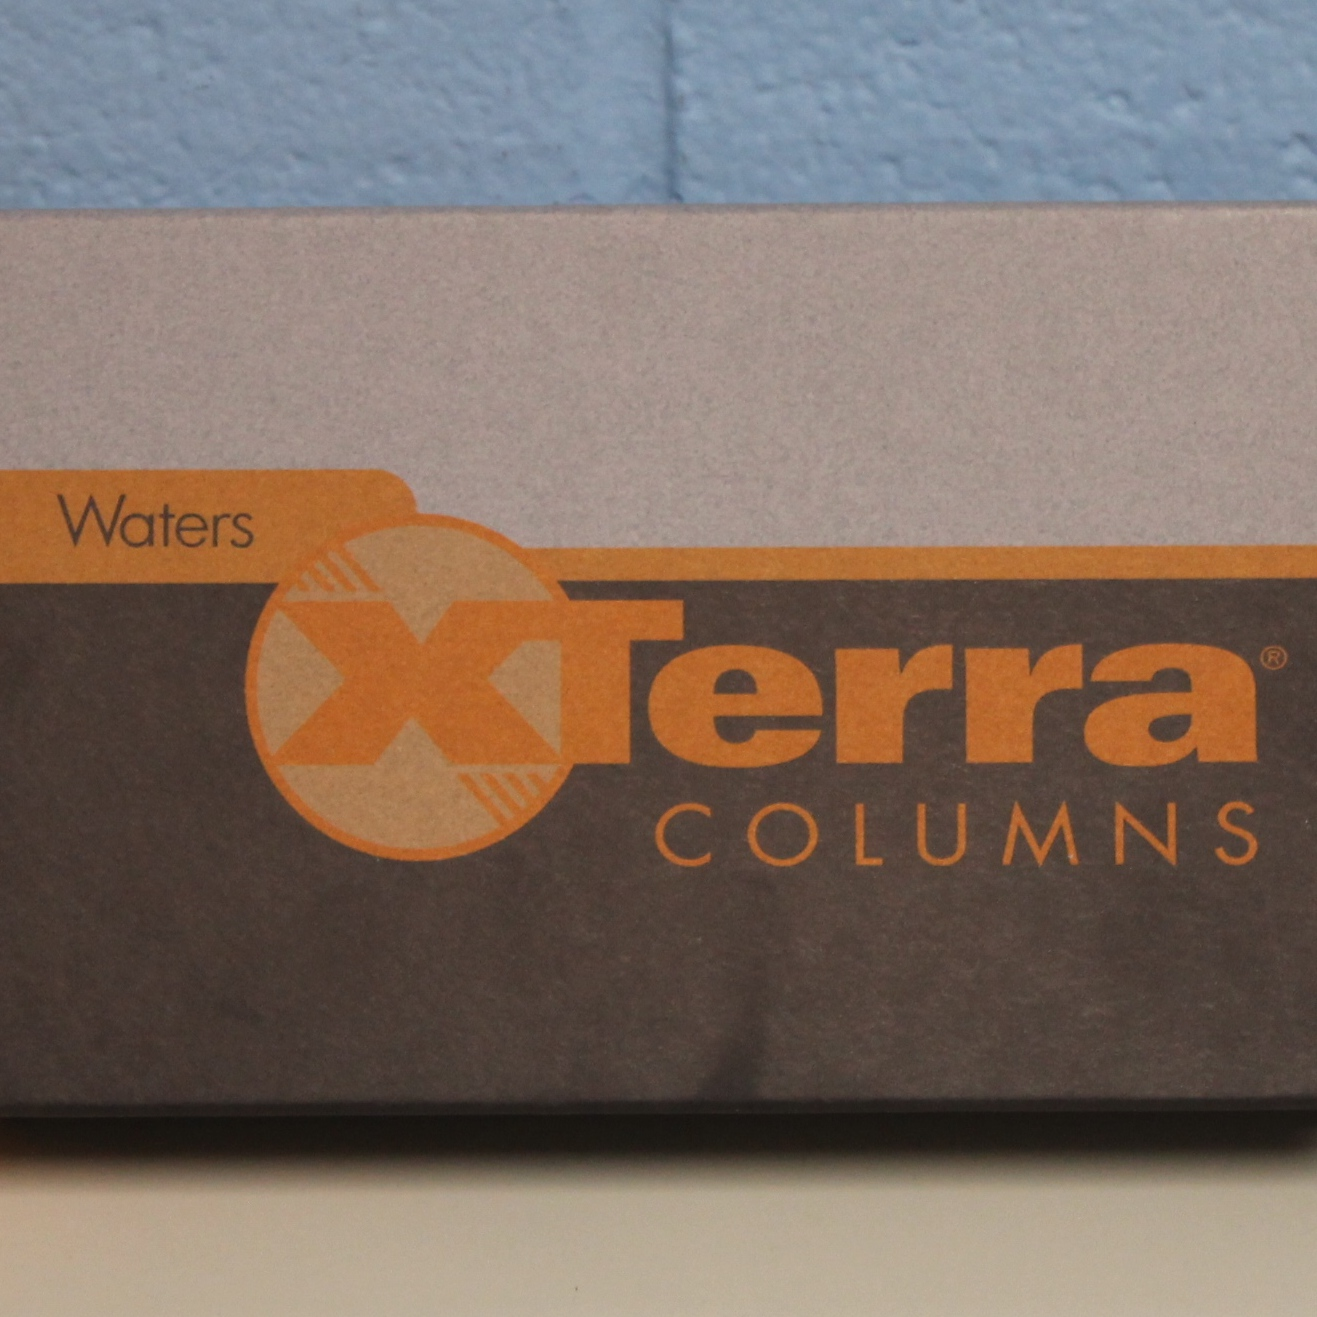 Waters Xterra MS C18 10 m, 3.0 x 50mm HPLC Column P/N 888000258 Image